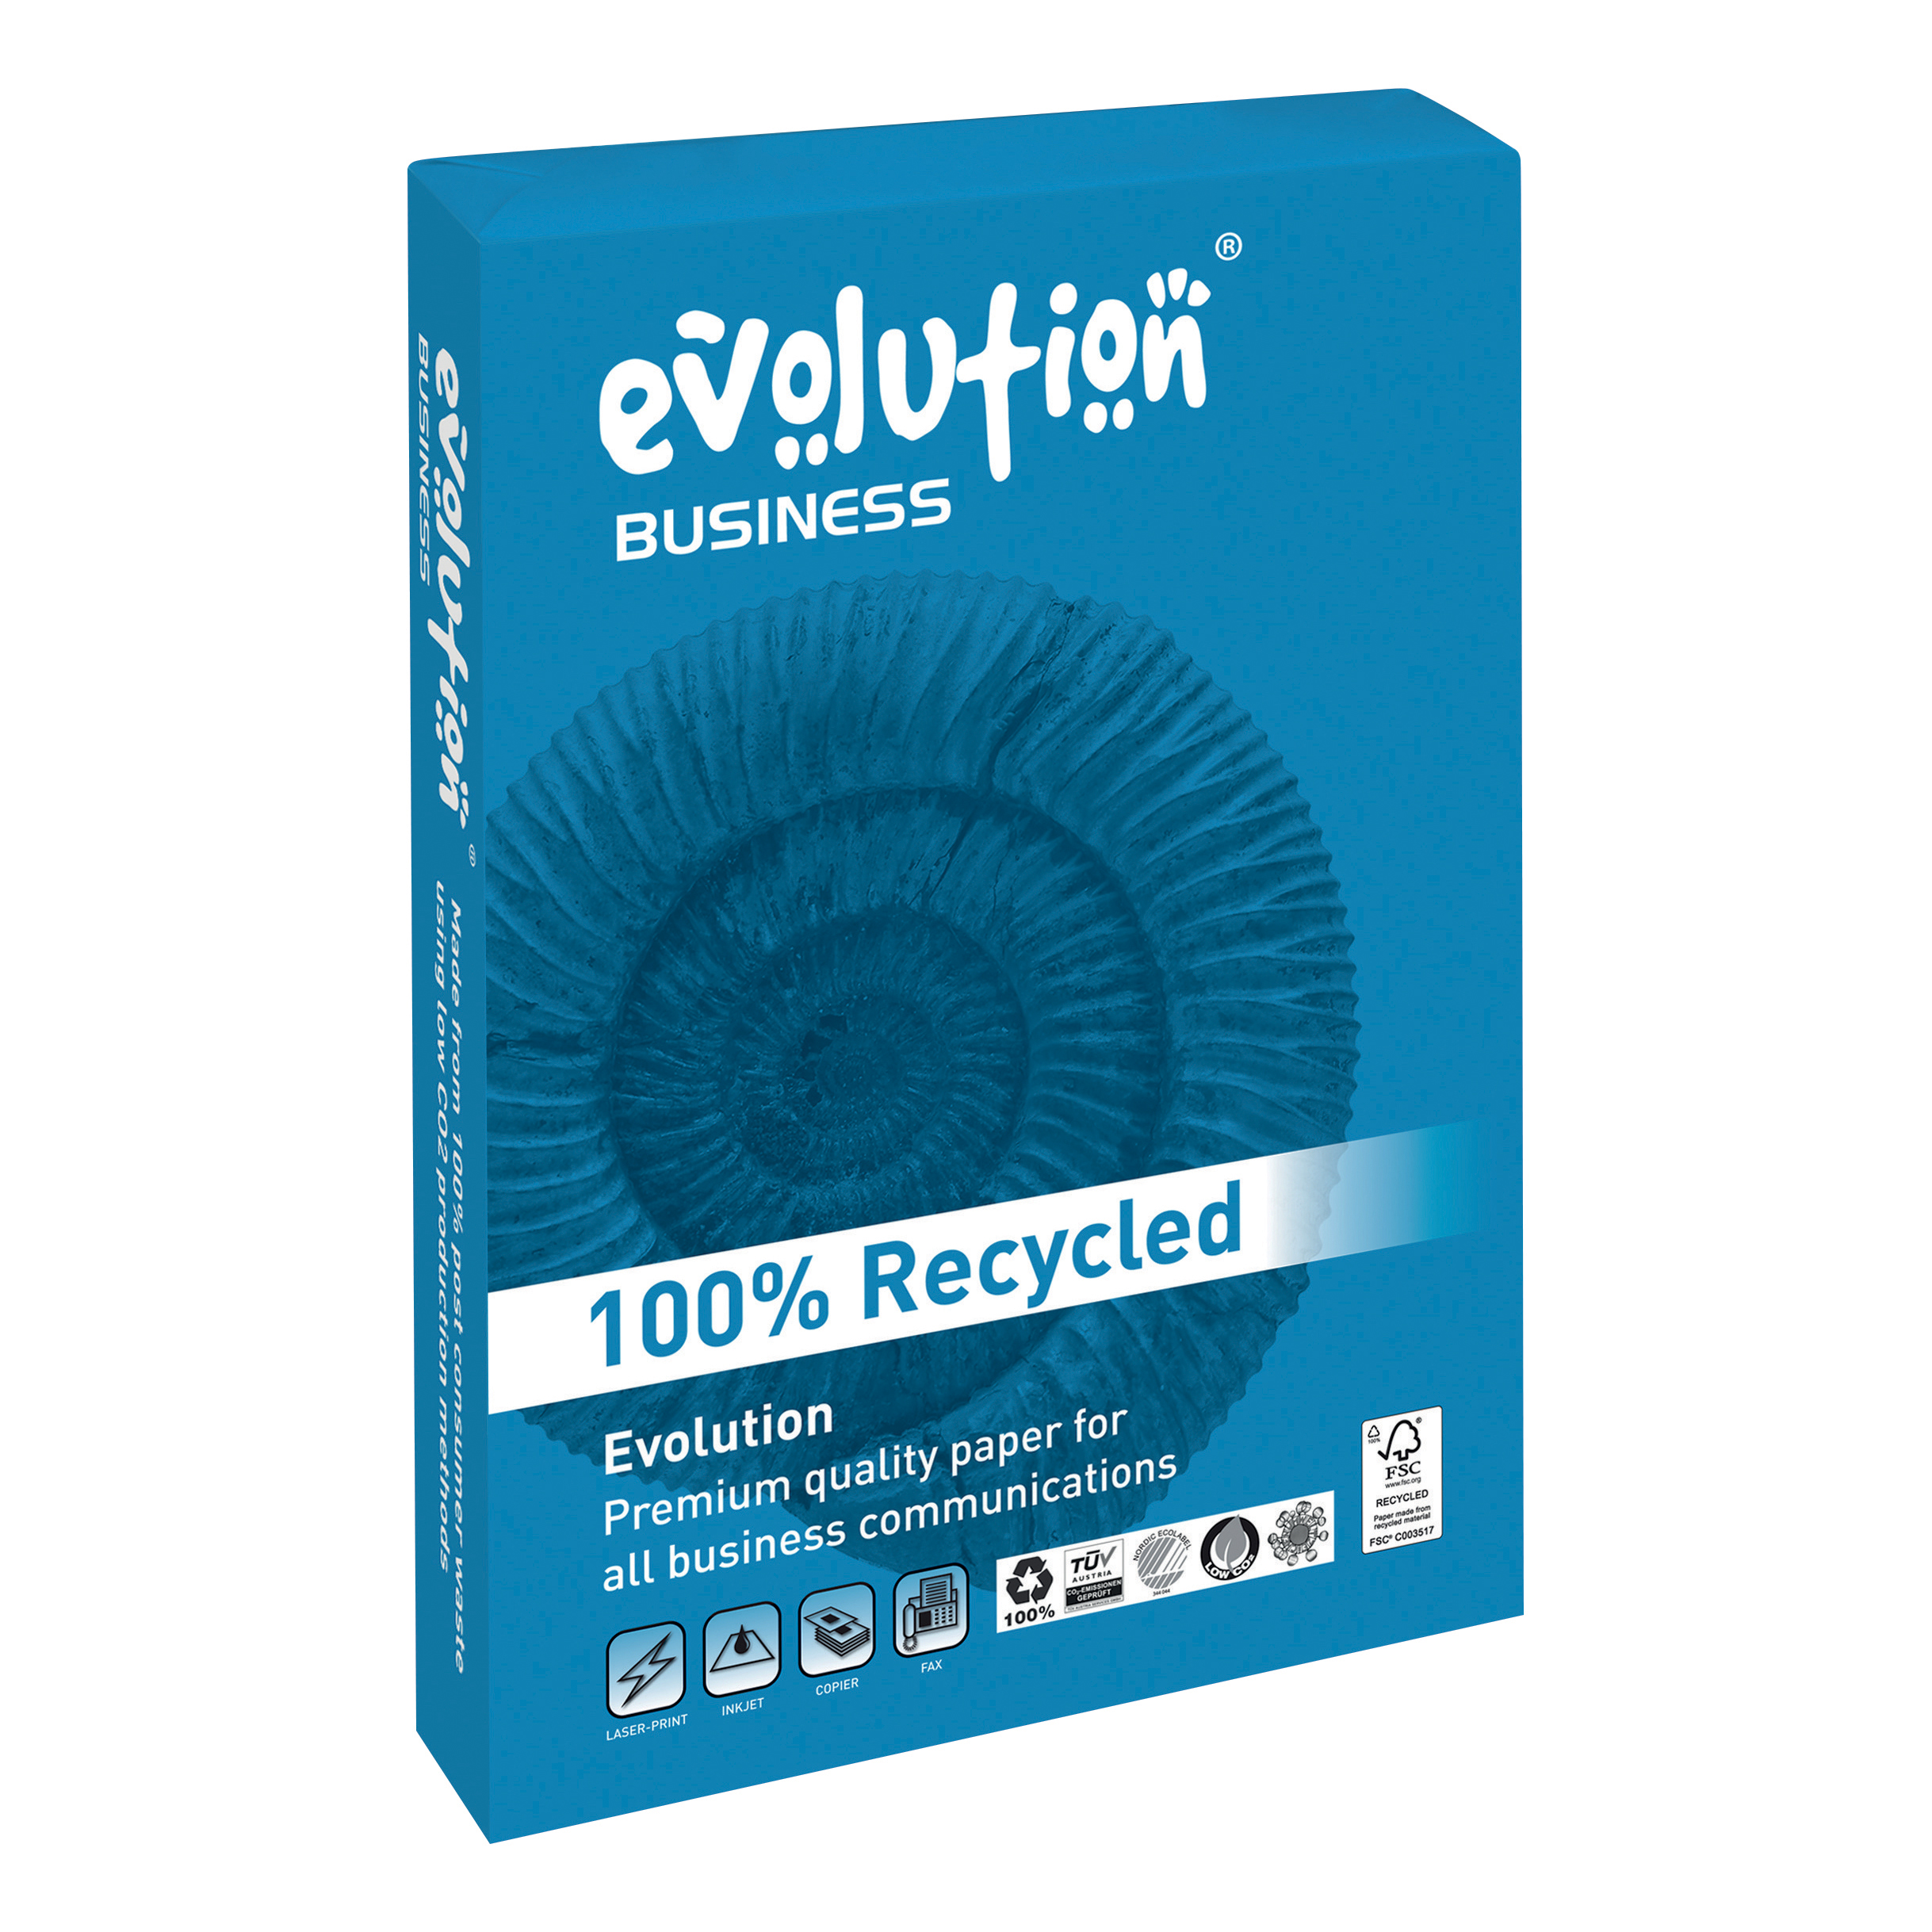 Evolution Business Recycled Paper 100gsm FSC A3 White Ref EVBU2100 500 Sheets